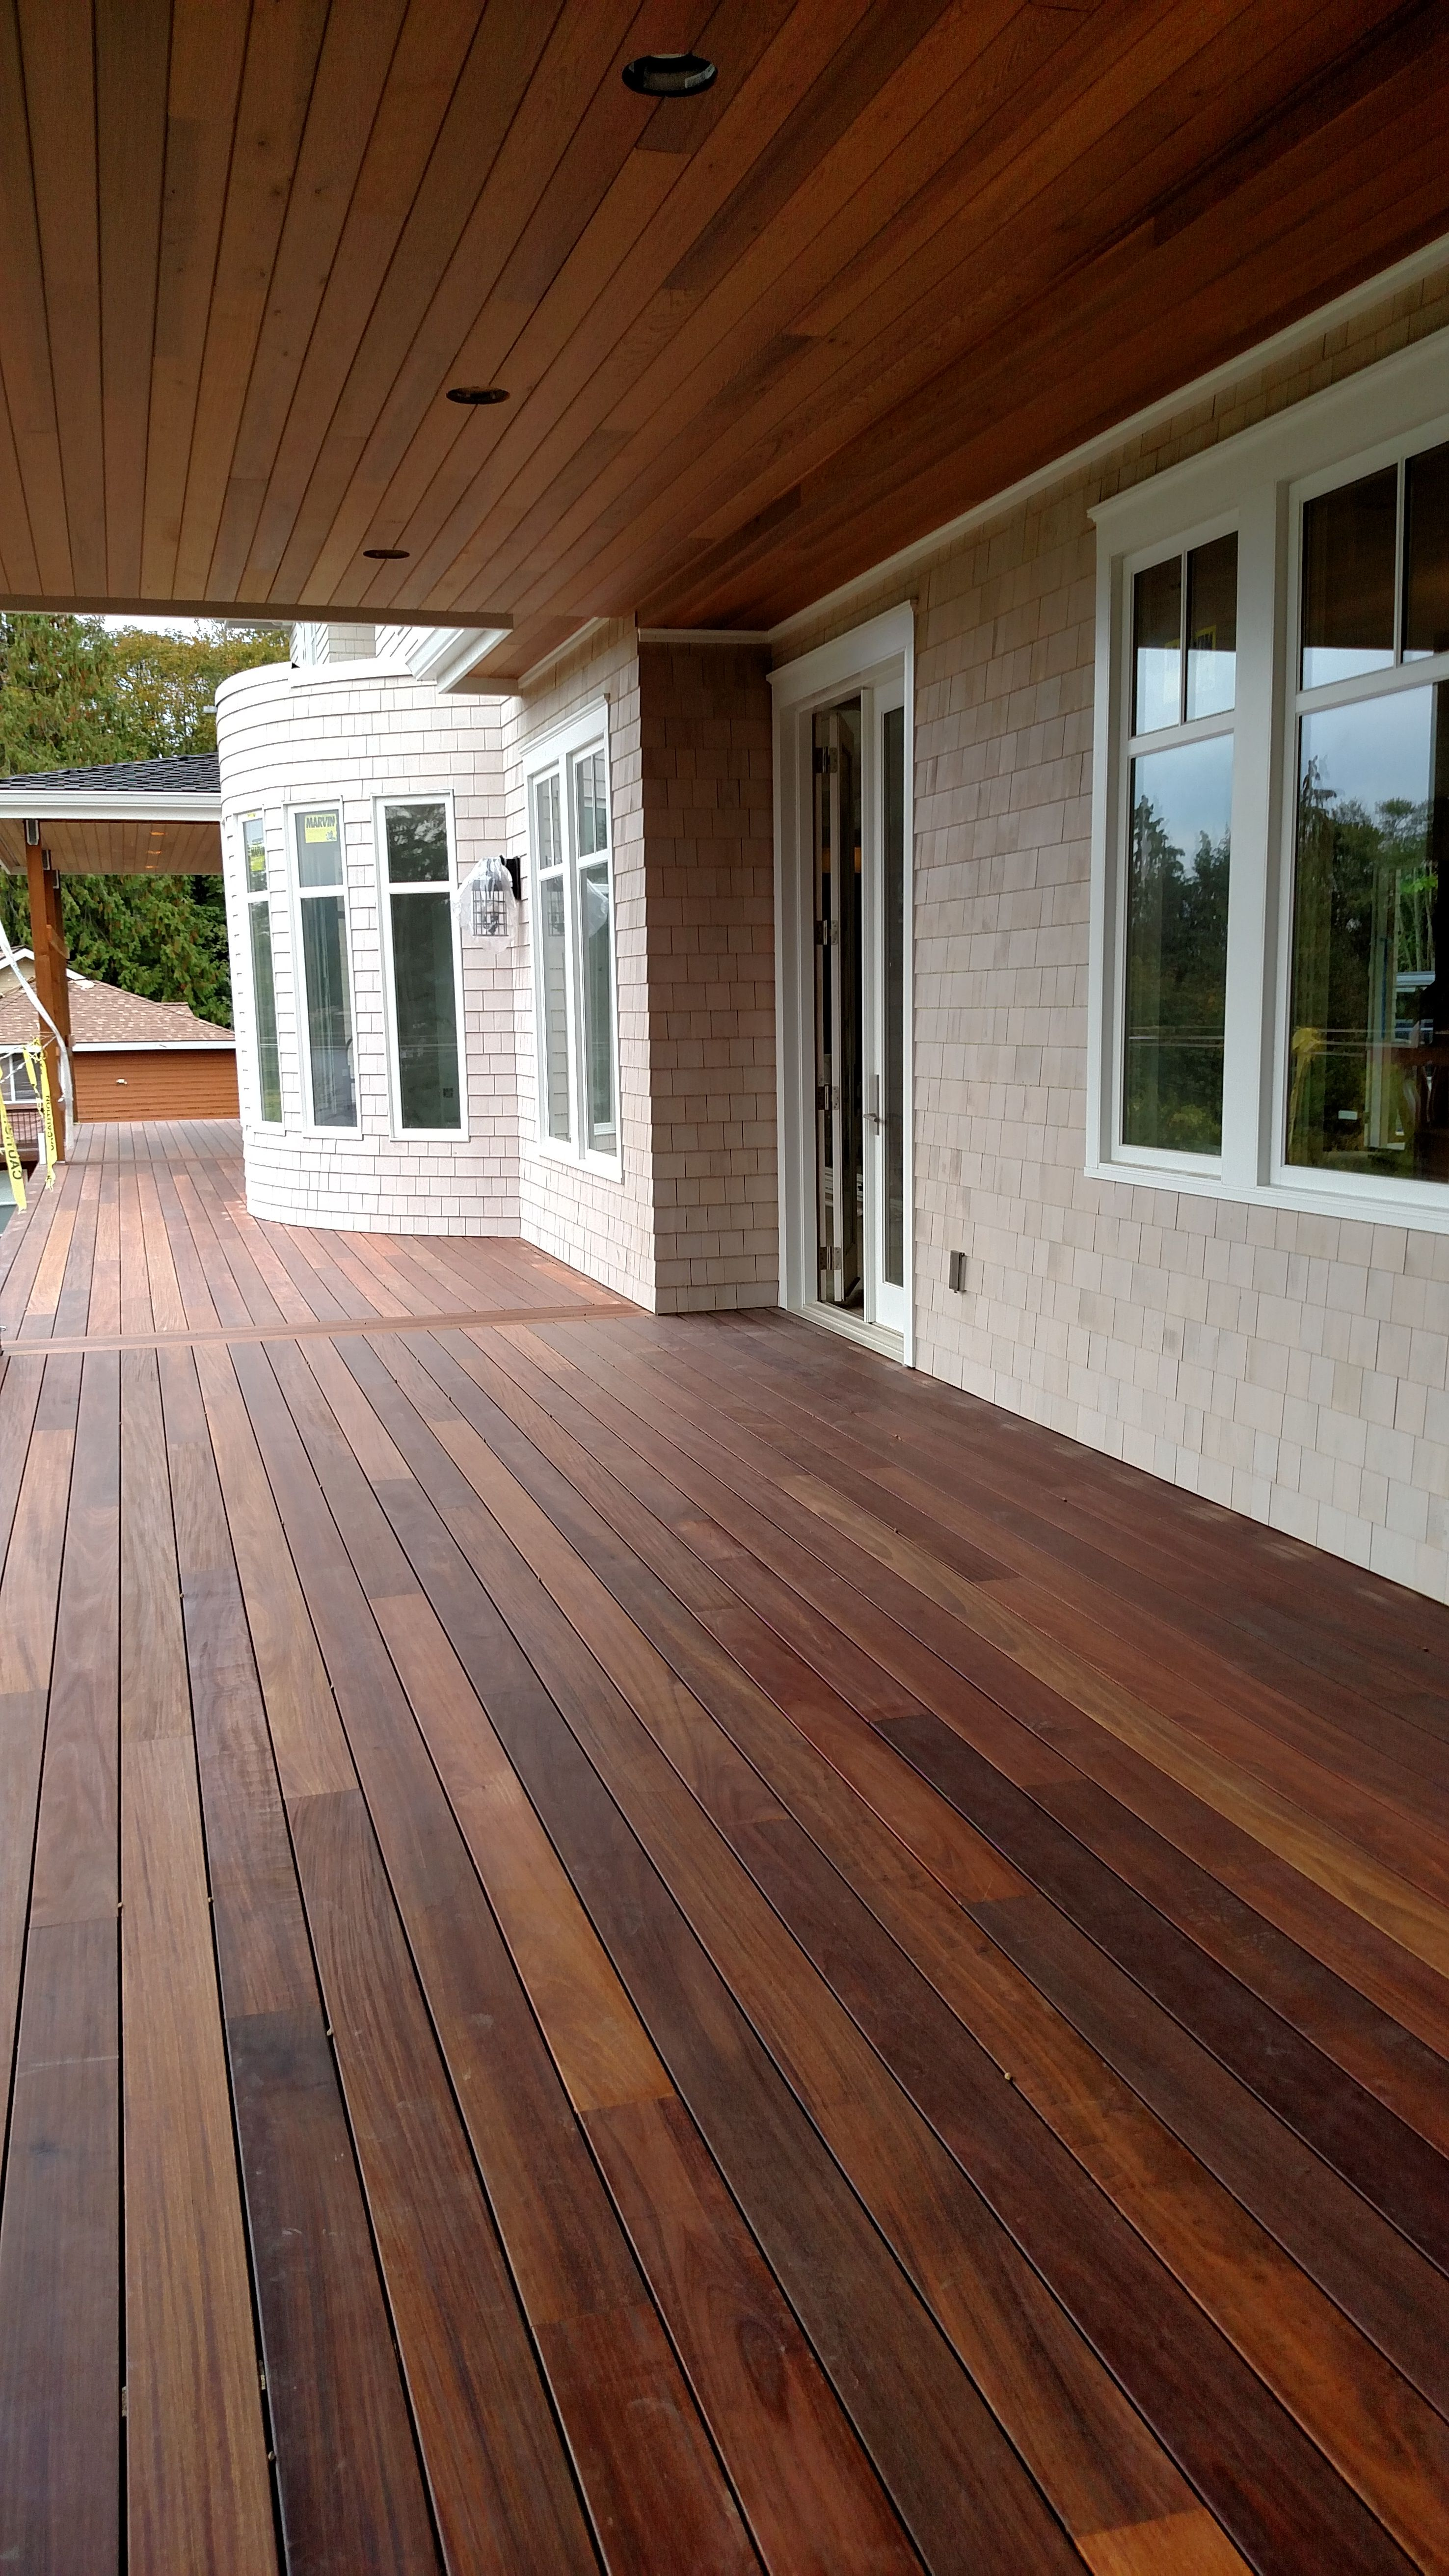 Mahogany Decking Applied With Penofin Exotic Hardwood